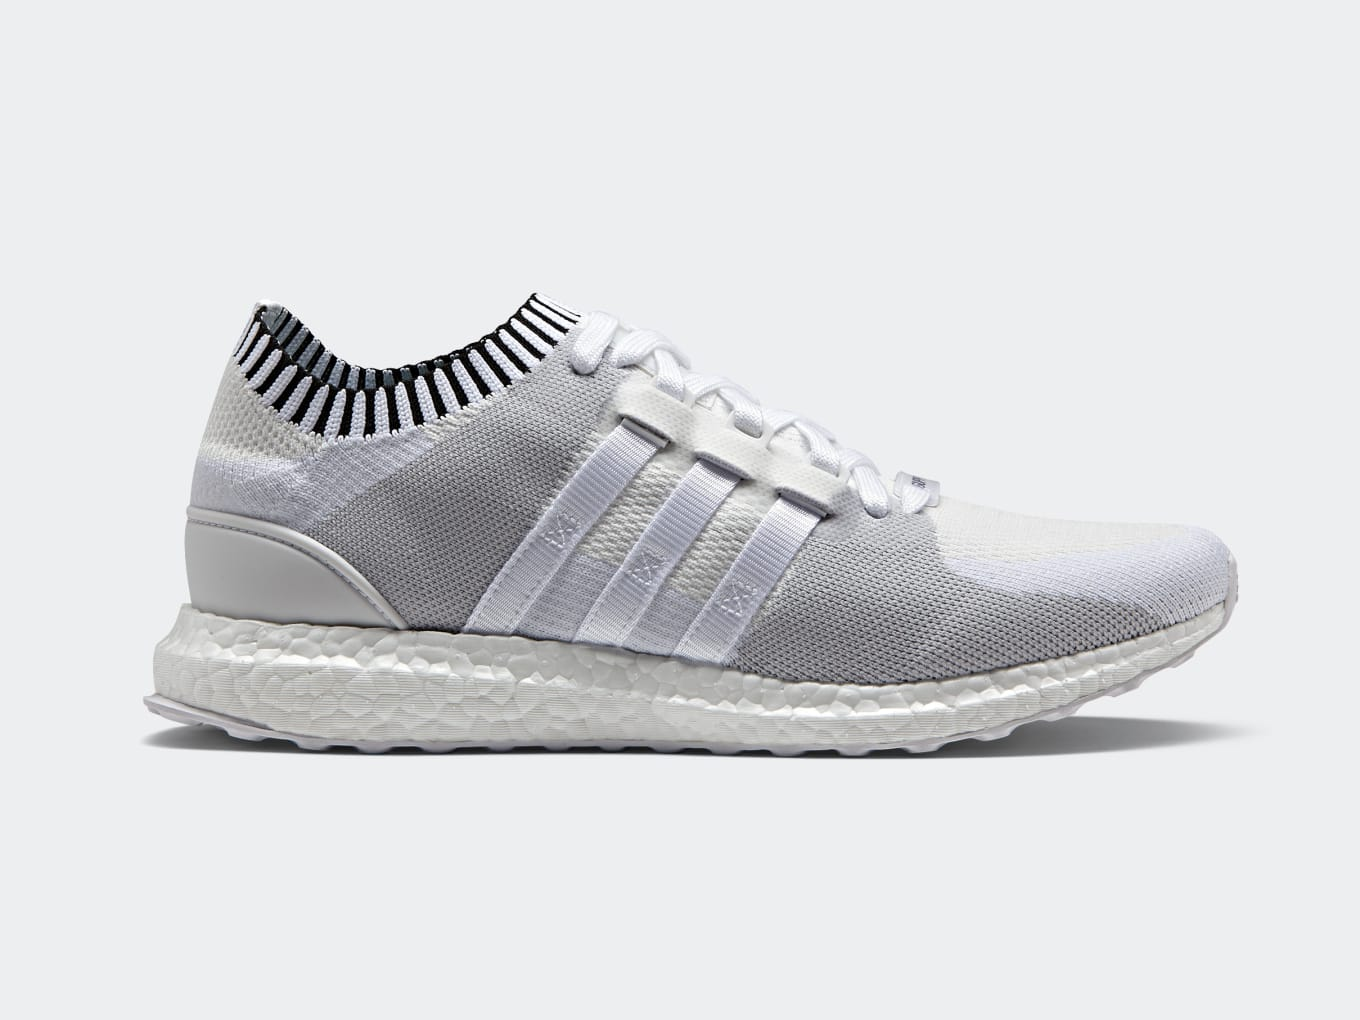 283bad8e370  Vintage White  Adidas EQT Support Ultras Releasing on May 1. Modern EQT  style with Ultra Boost tooling.